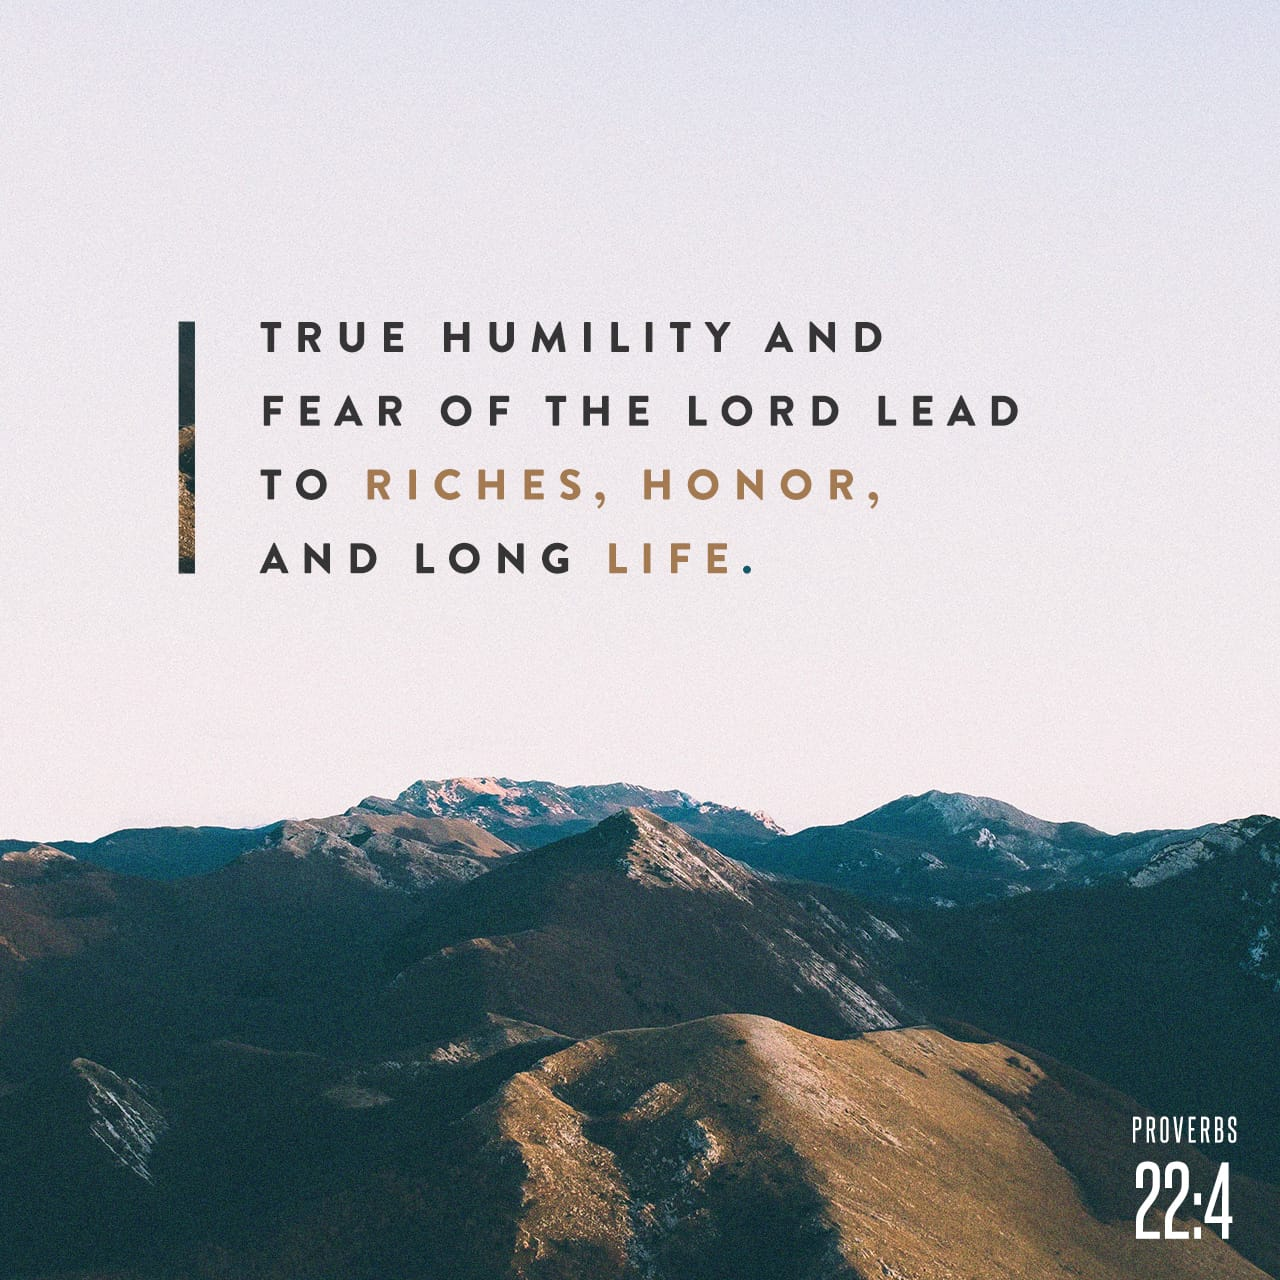 Proverbs 22:4 By humility and the fear of the LORD are riches, and